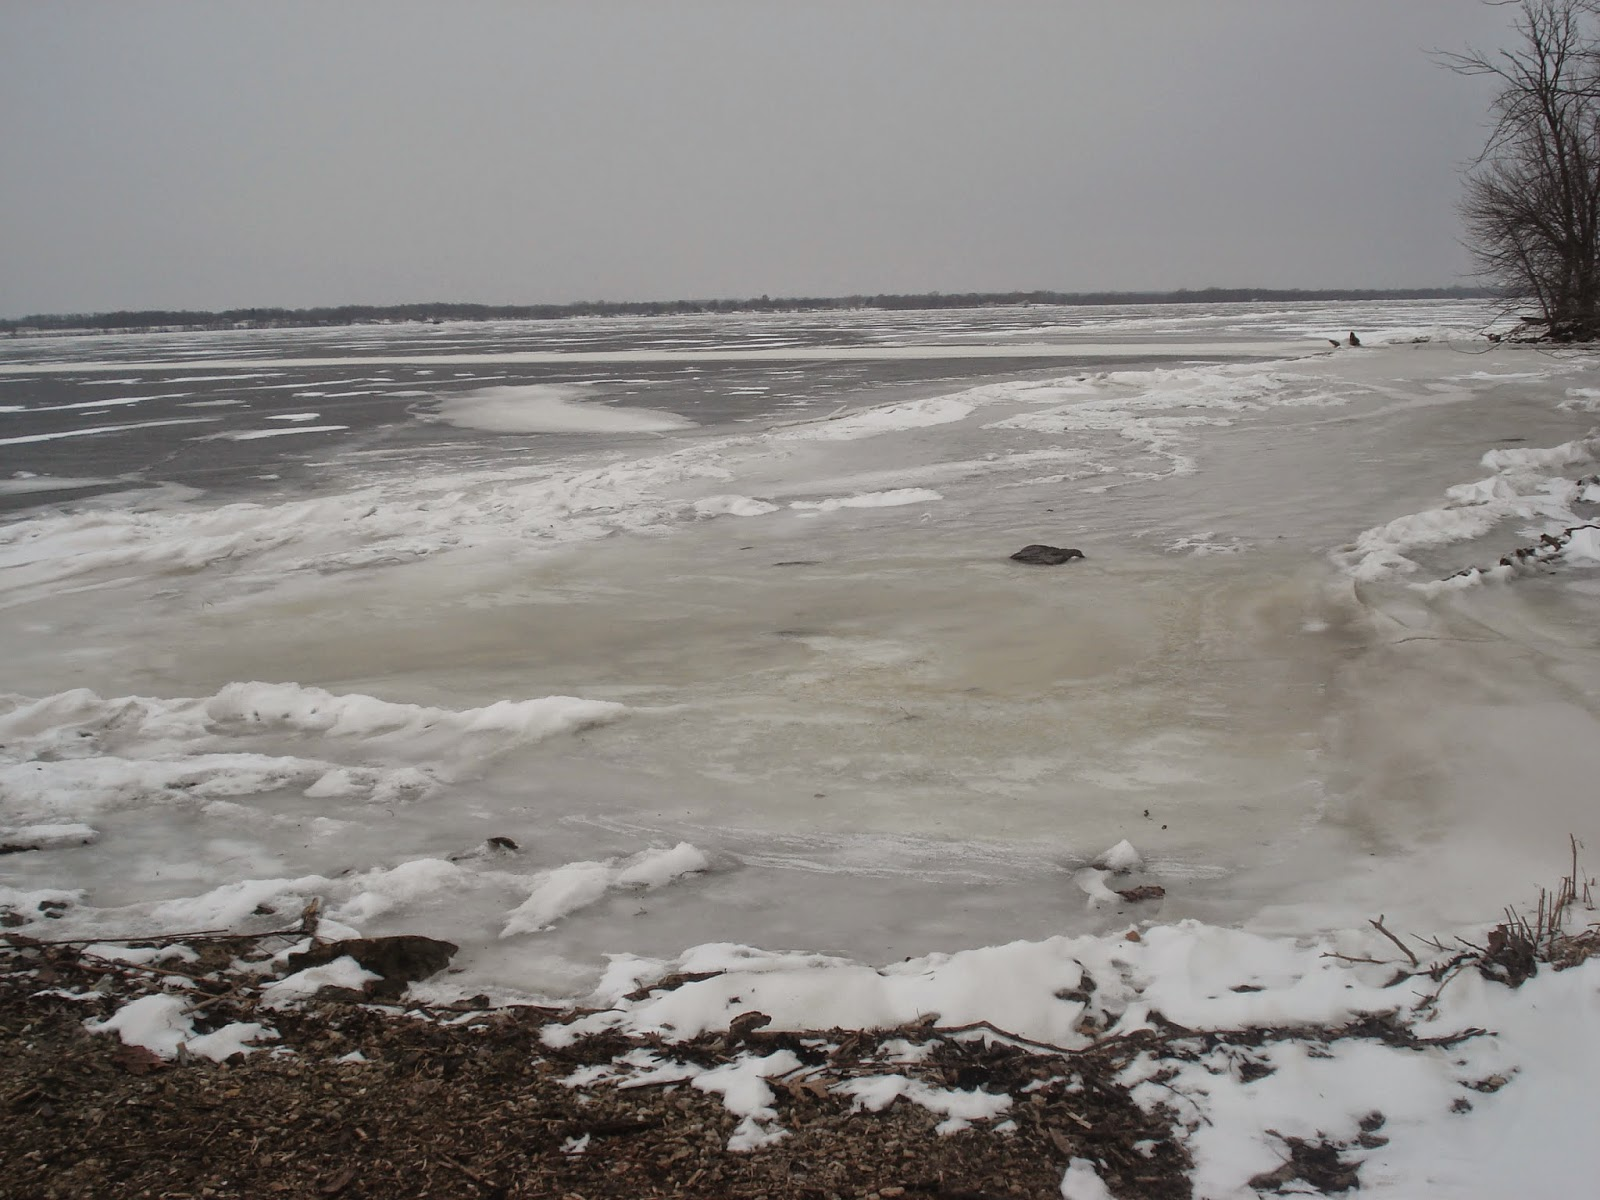 So Cold That If There Wasnu0027t A $1000 Fine For Setting Foot On The Iced Over  Mississippi River, Nauvoo Missionaries Would Make A Run For It.